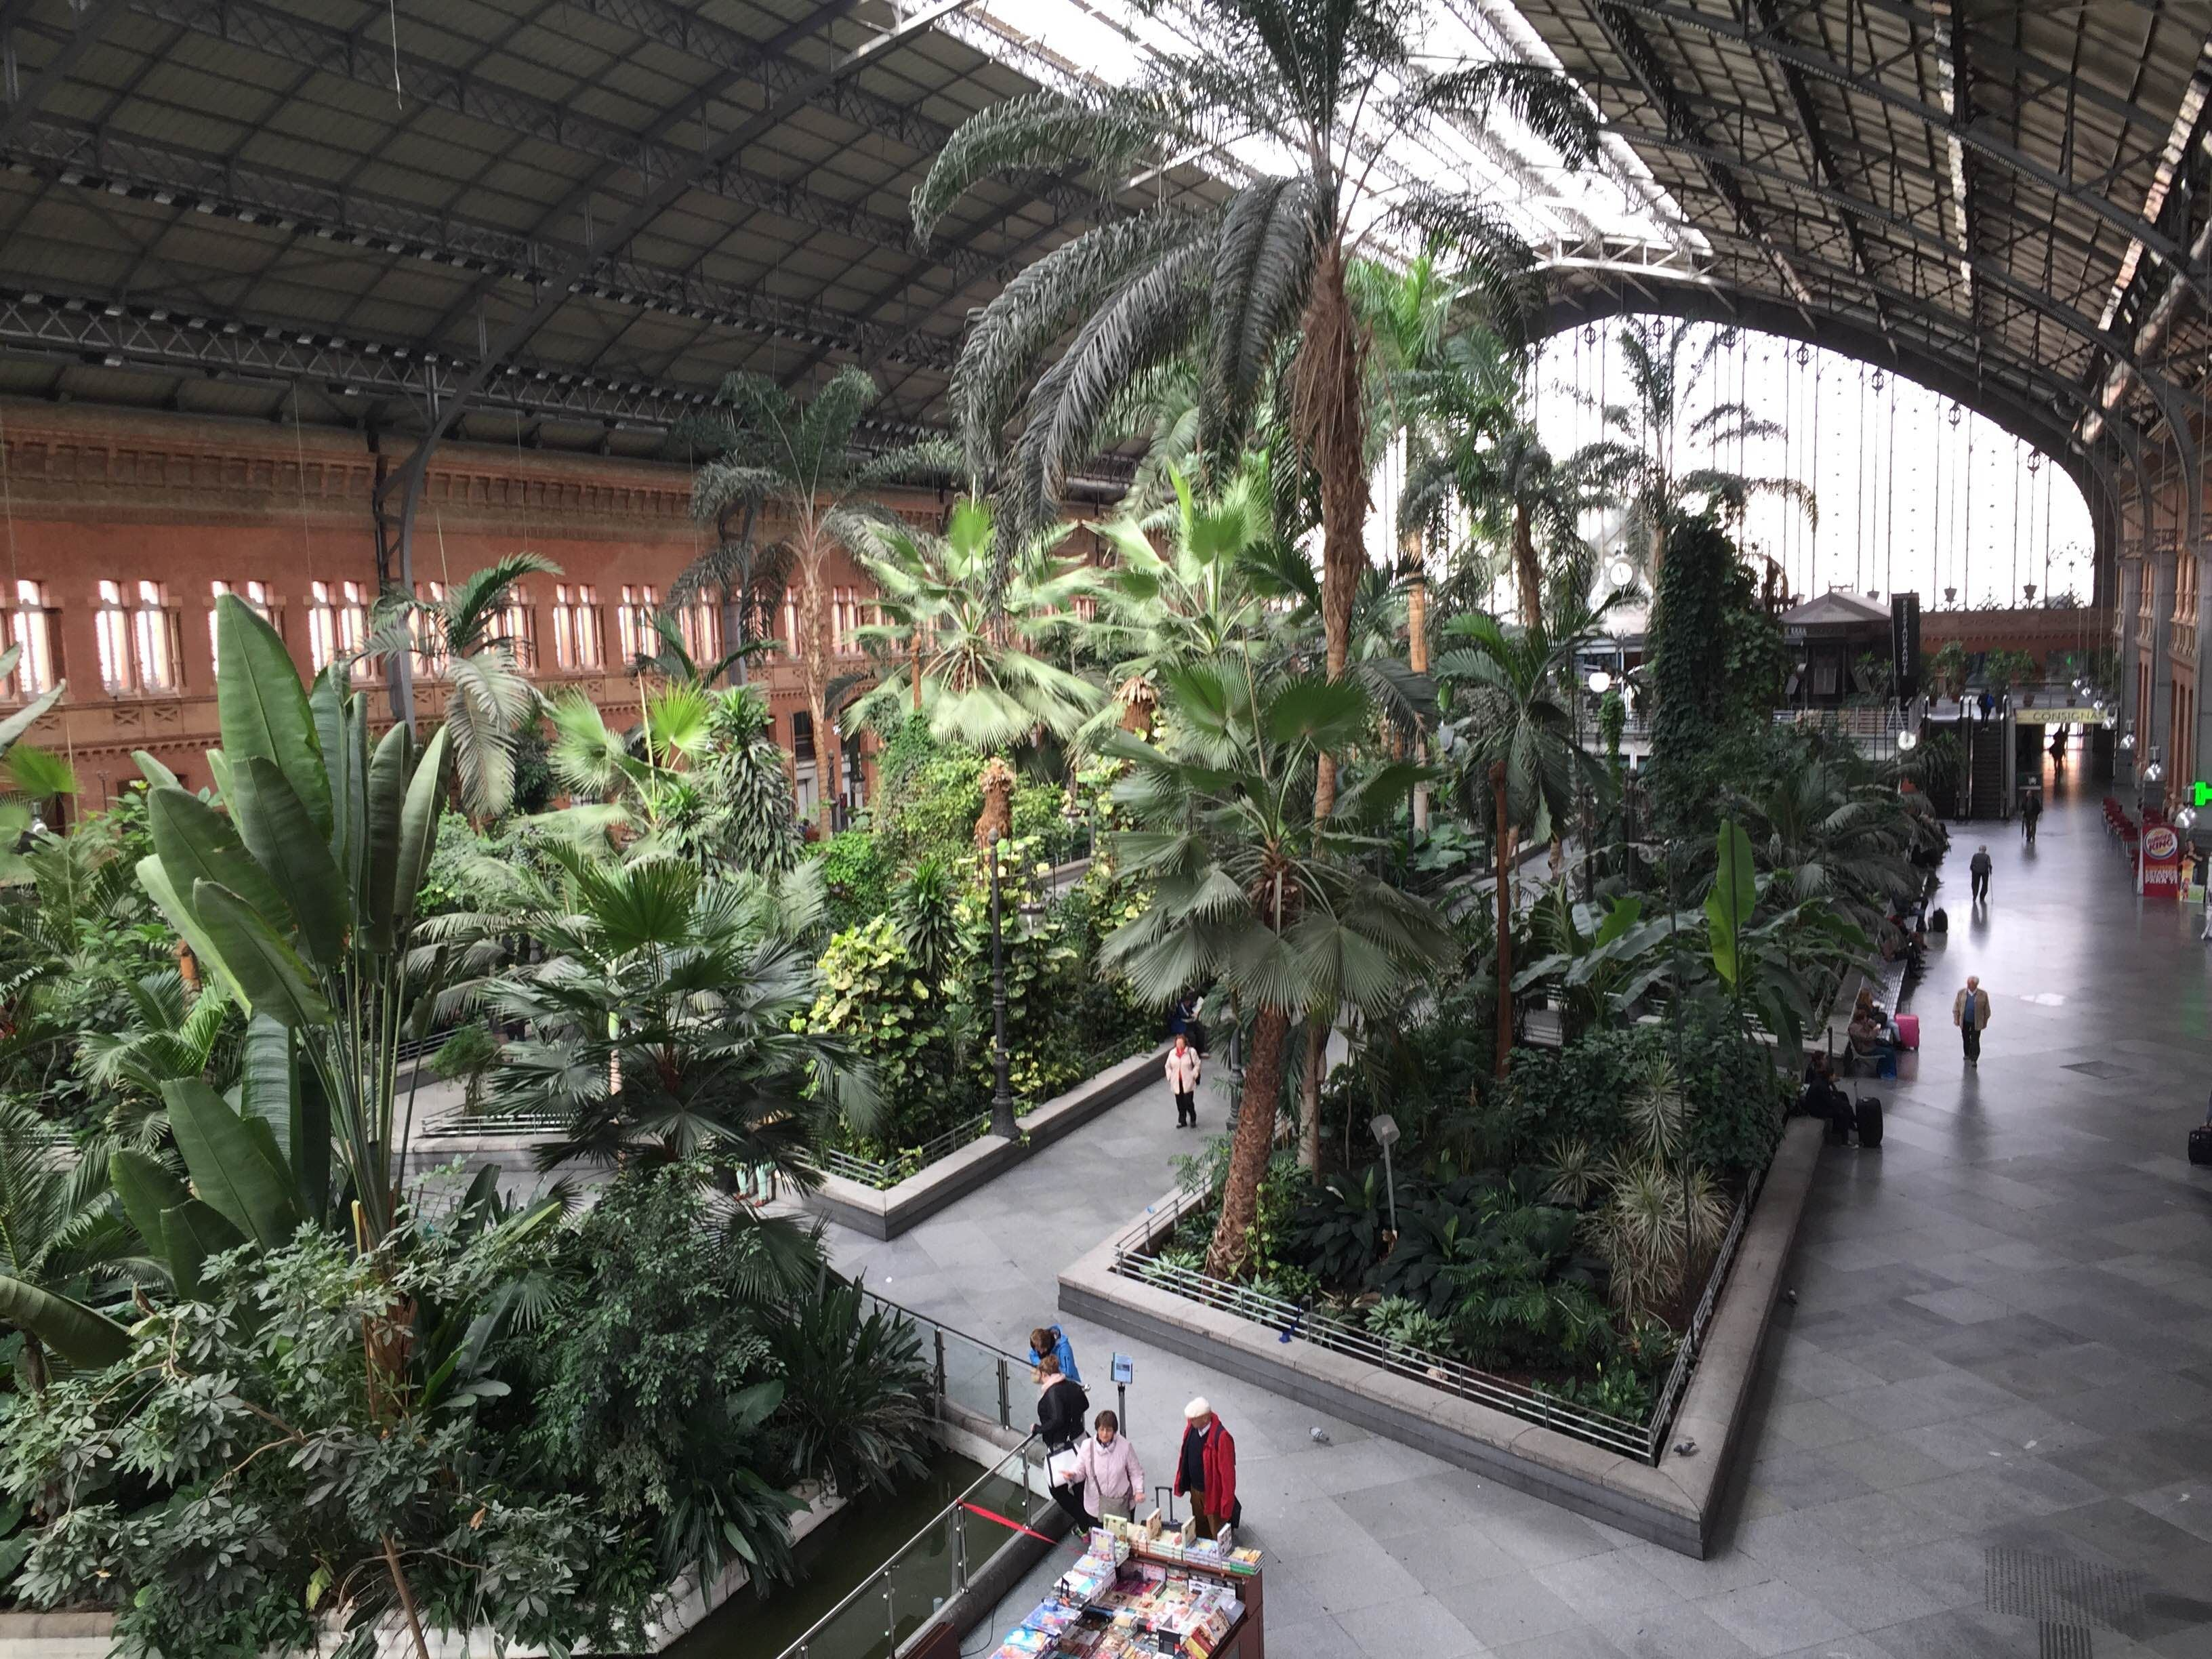 Patio en Estación de Atocha